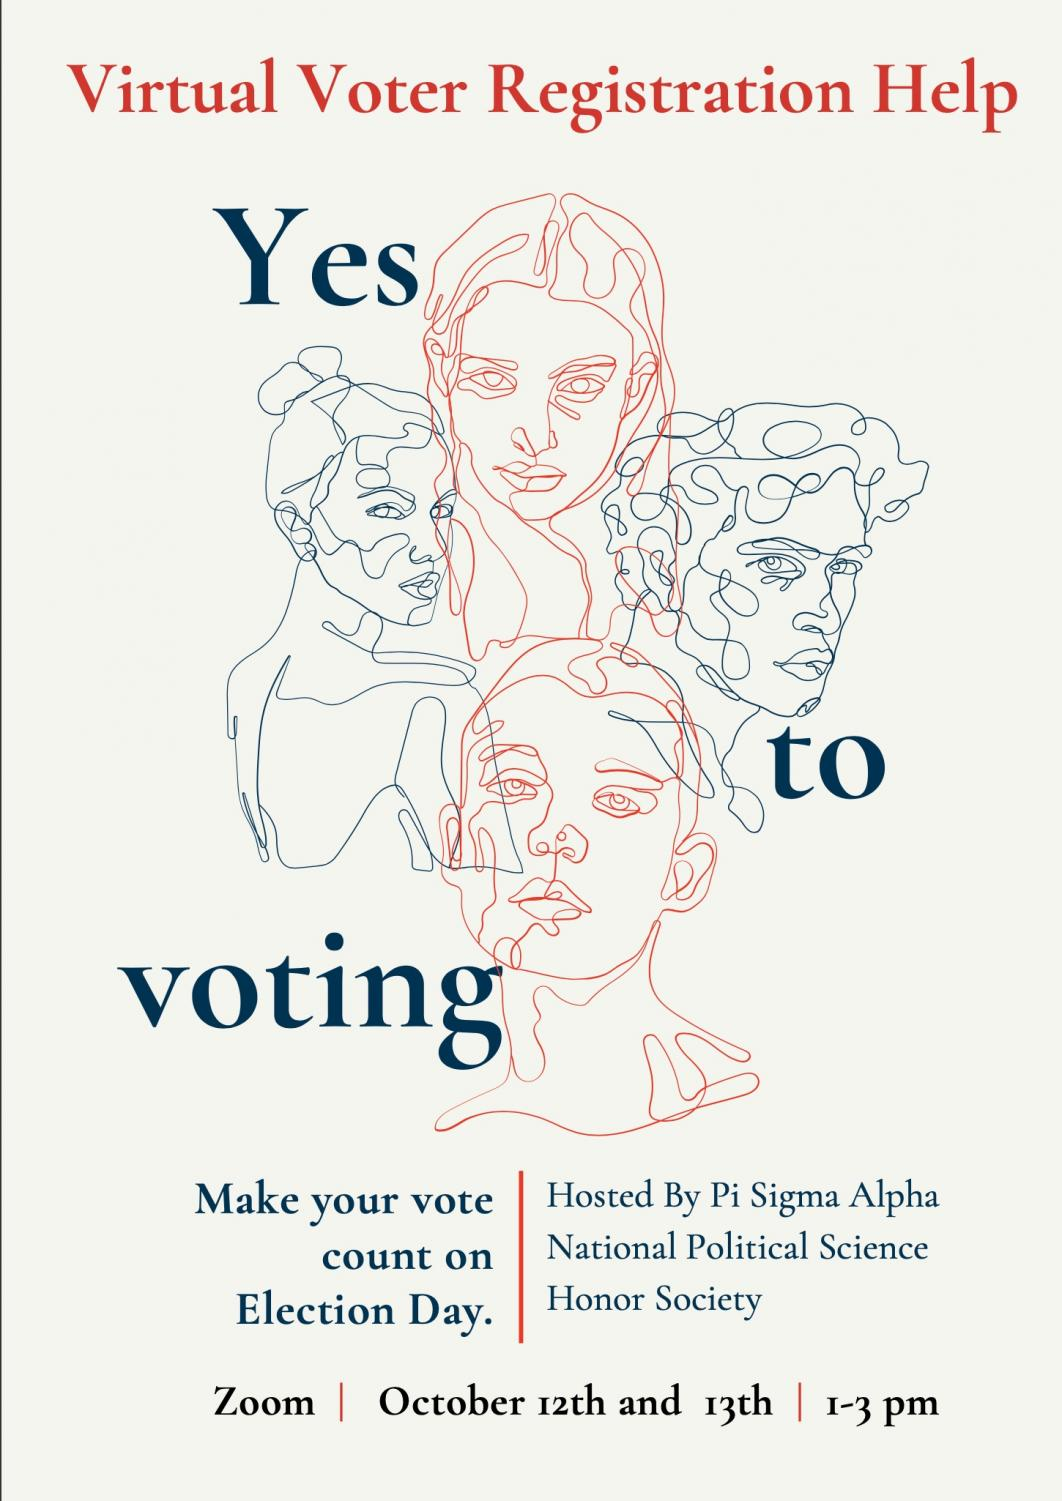 A poster showing a voter registration event hosted by Pi Sigma Alpha